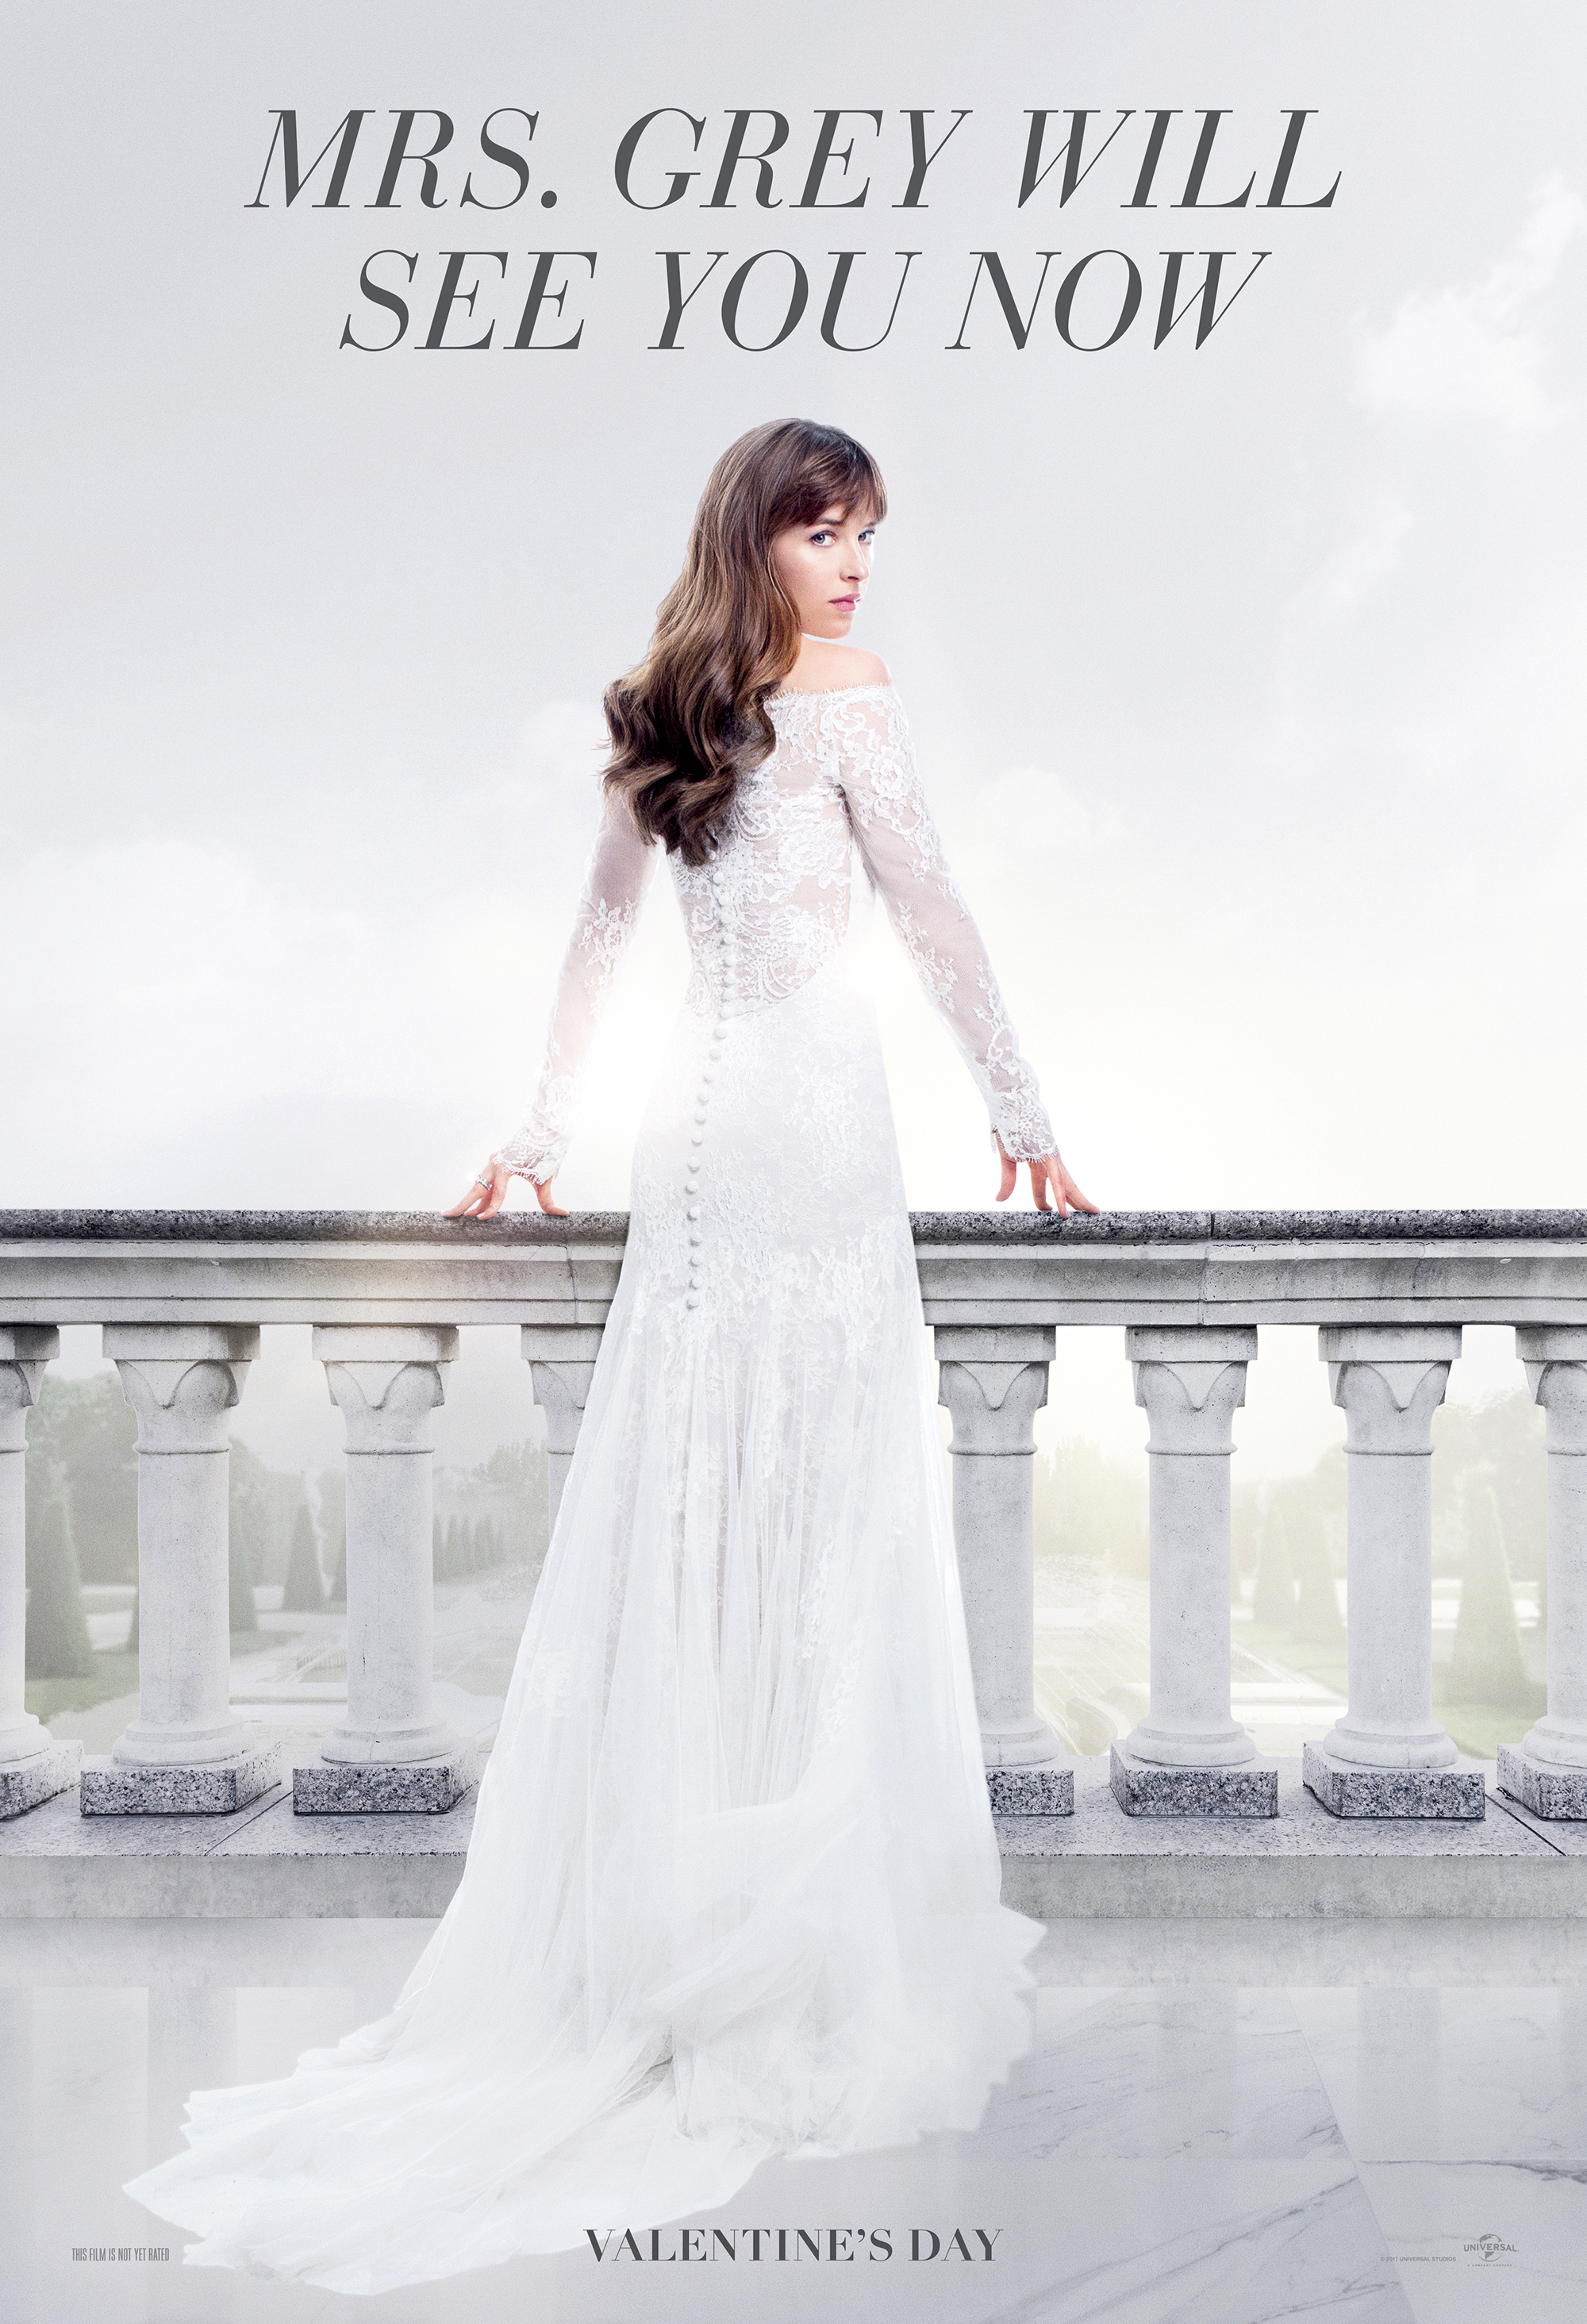 Horrible Shades Watch New Trailer Fifty Shades Watch New Trailer Fifty Shades Freed Watch Online Youtube Fifty Shades Freed Watch Online Rent houzz-03 Fifty Shades Freed Watch Online